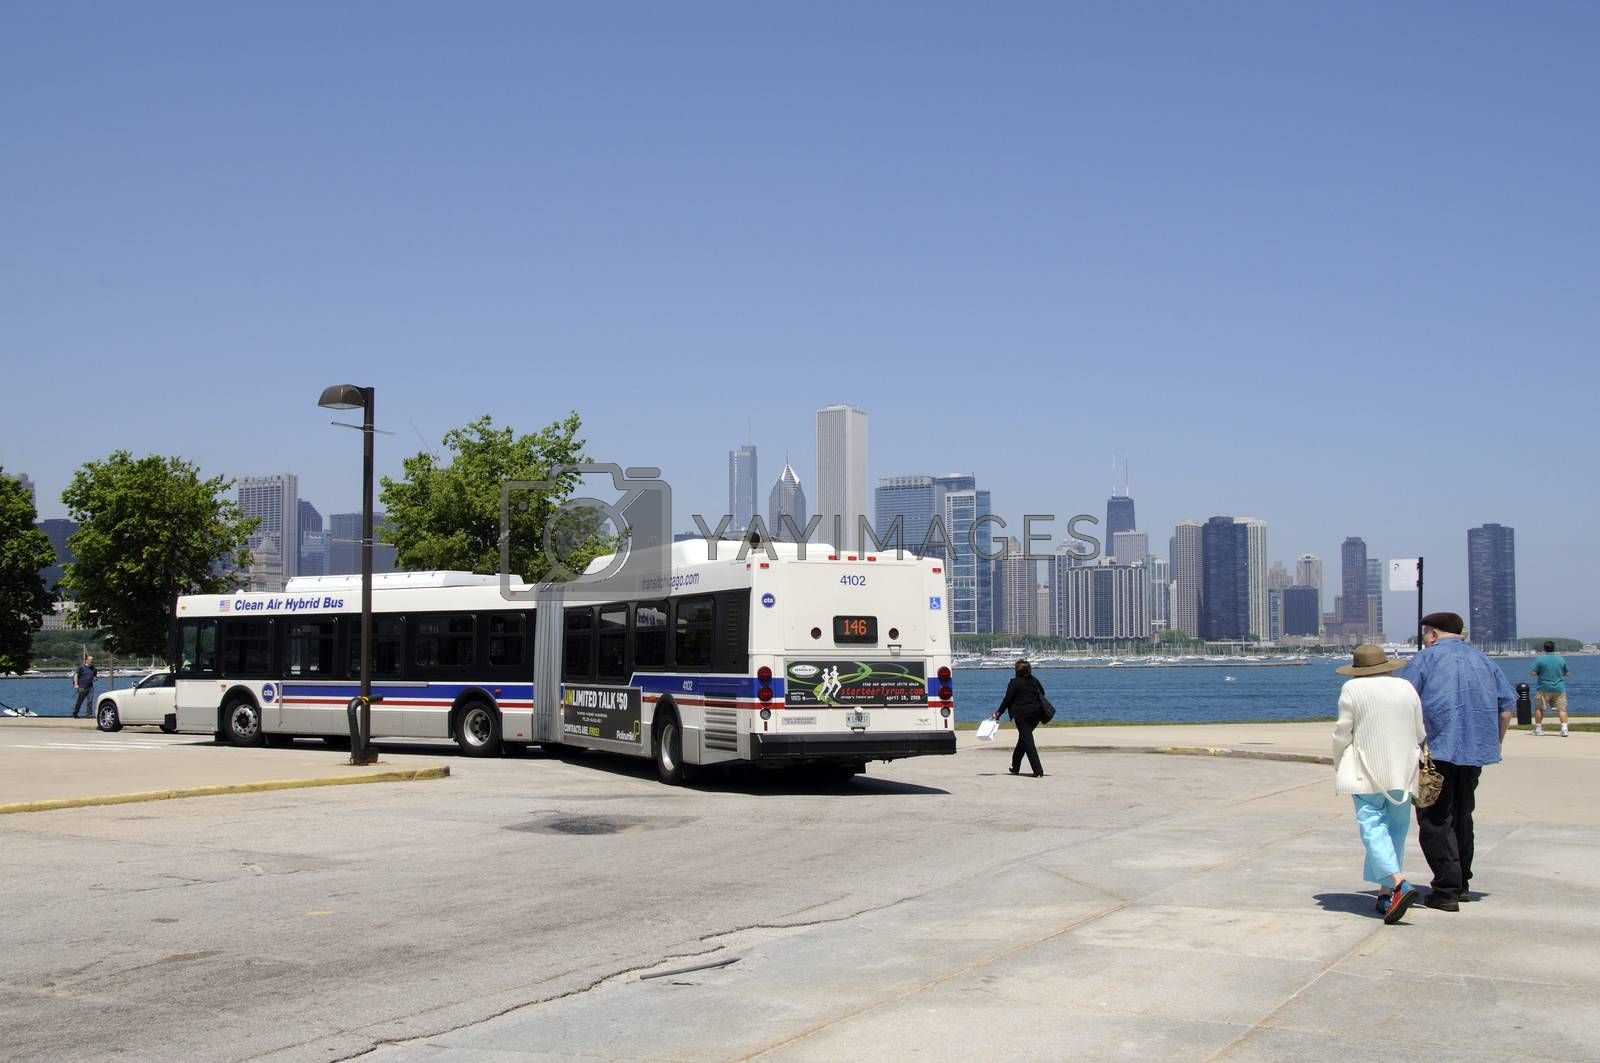 Bendy bus Chicago USA by Peter t